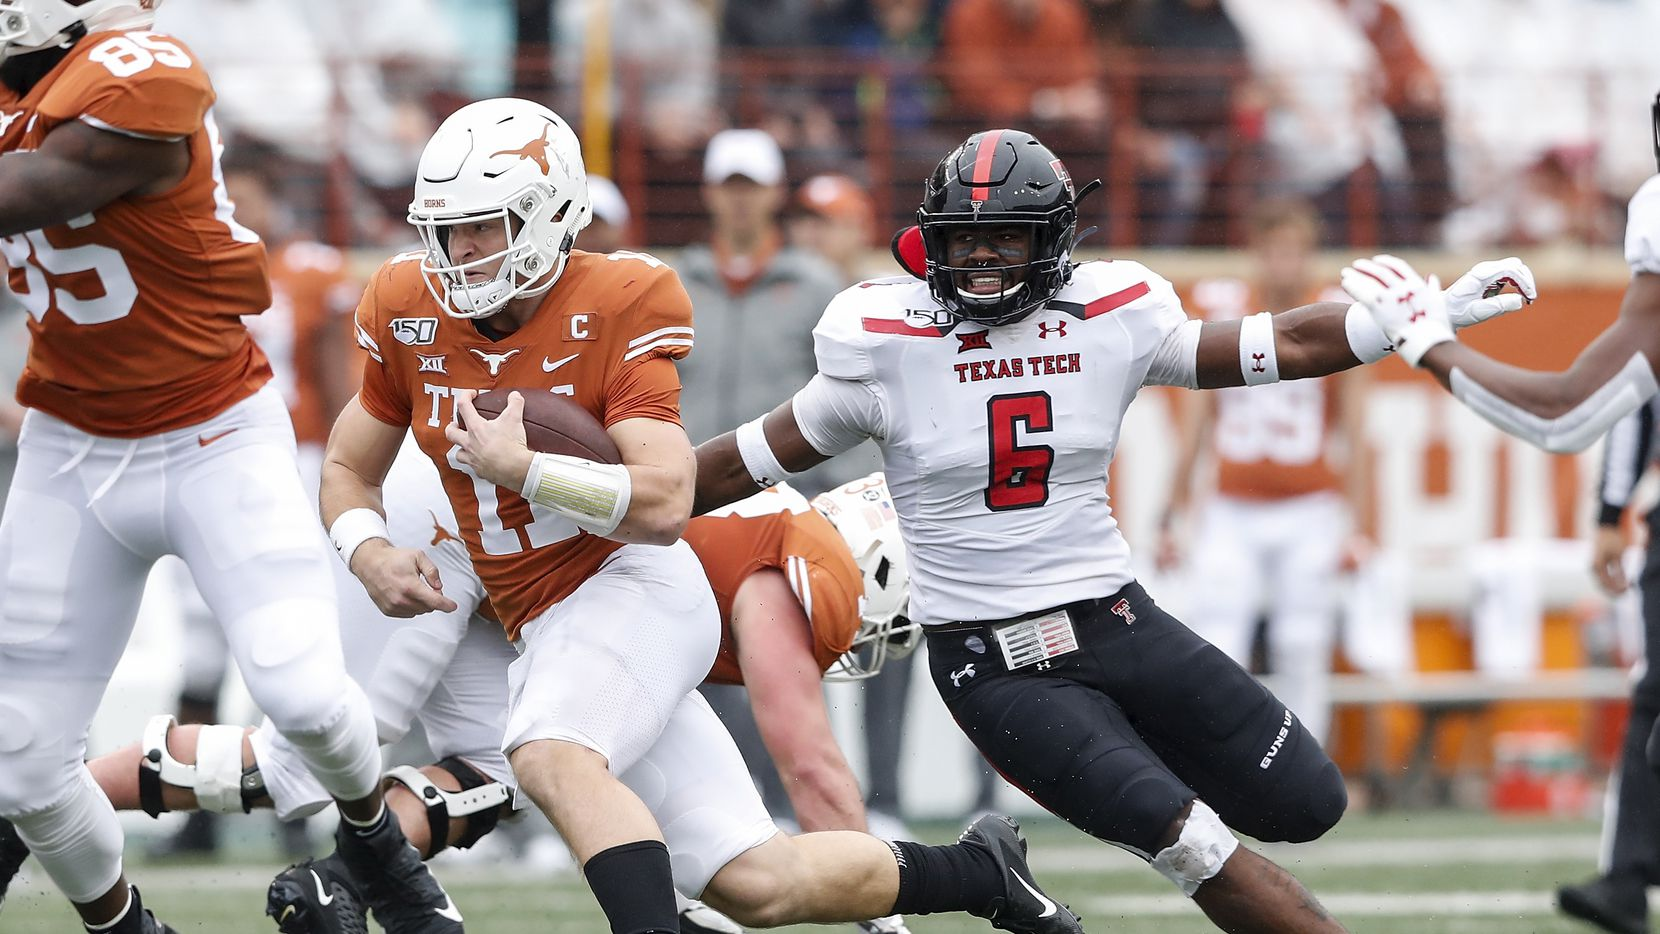 AUSTIN, TX - NOVEMBER 29:  Sam Ehlinger #11 of the Texas Longhorns runs the ball defended by Riko Jeffers #6 of the Texas Tech Red Raiders in the first quarter at Darrell K Royal-Texas Memorial Stadium on November 29, 2019 in Austin, Texas.